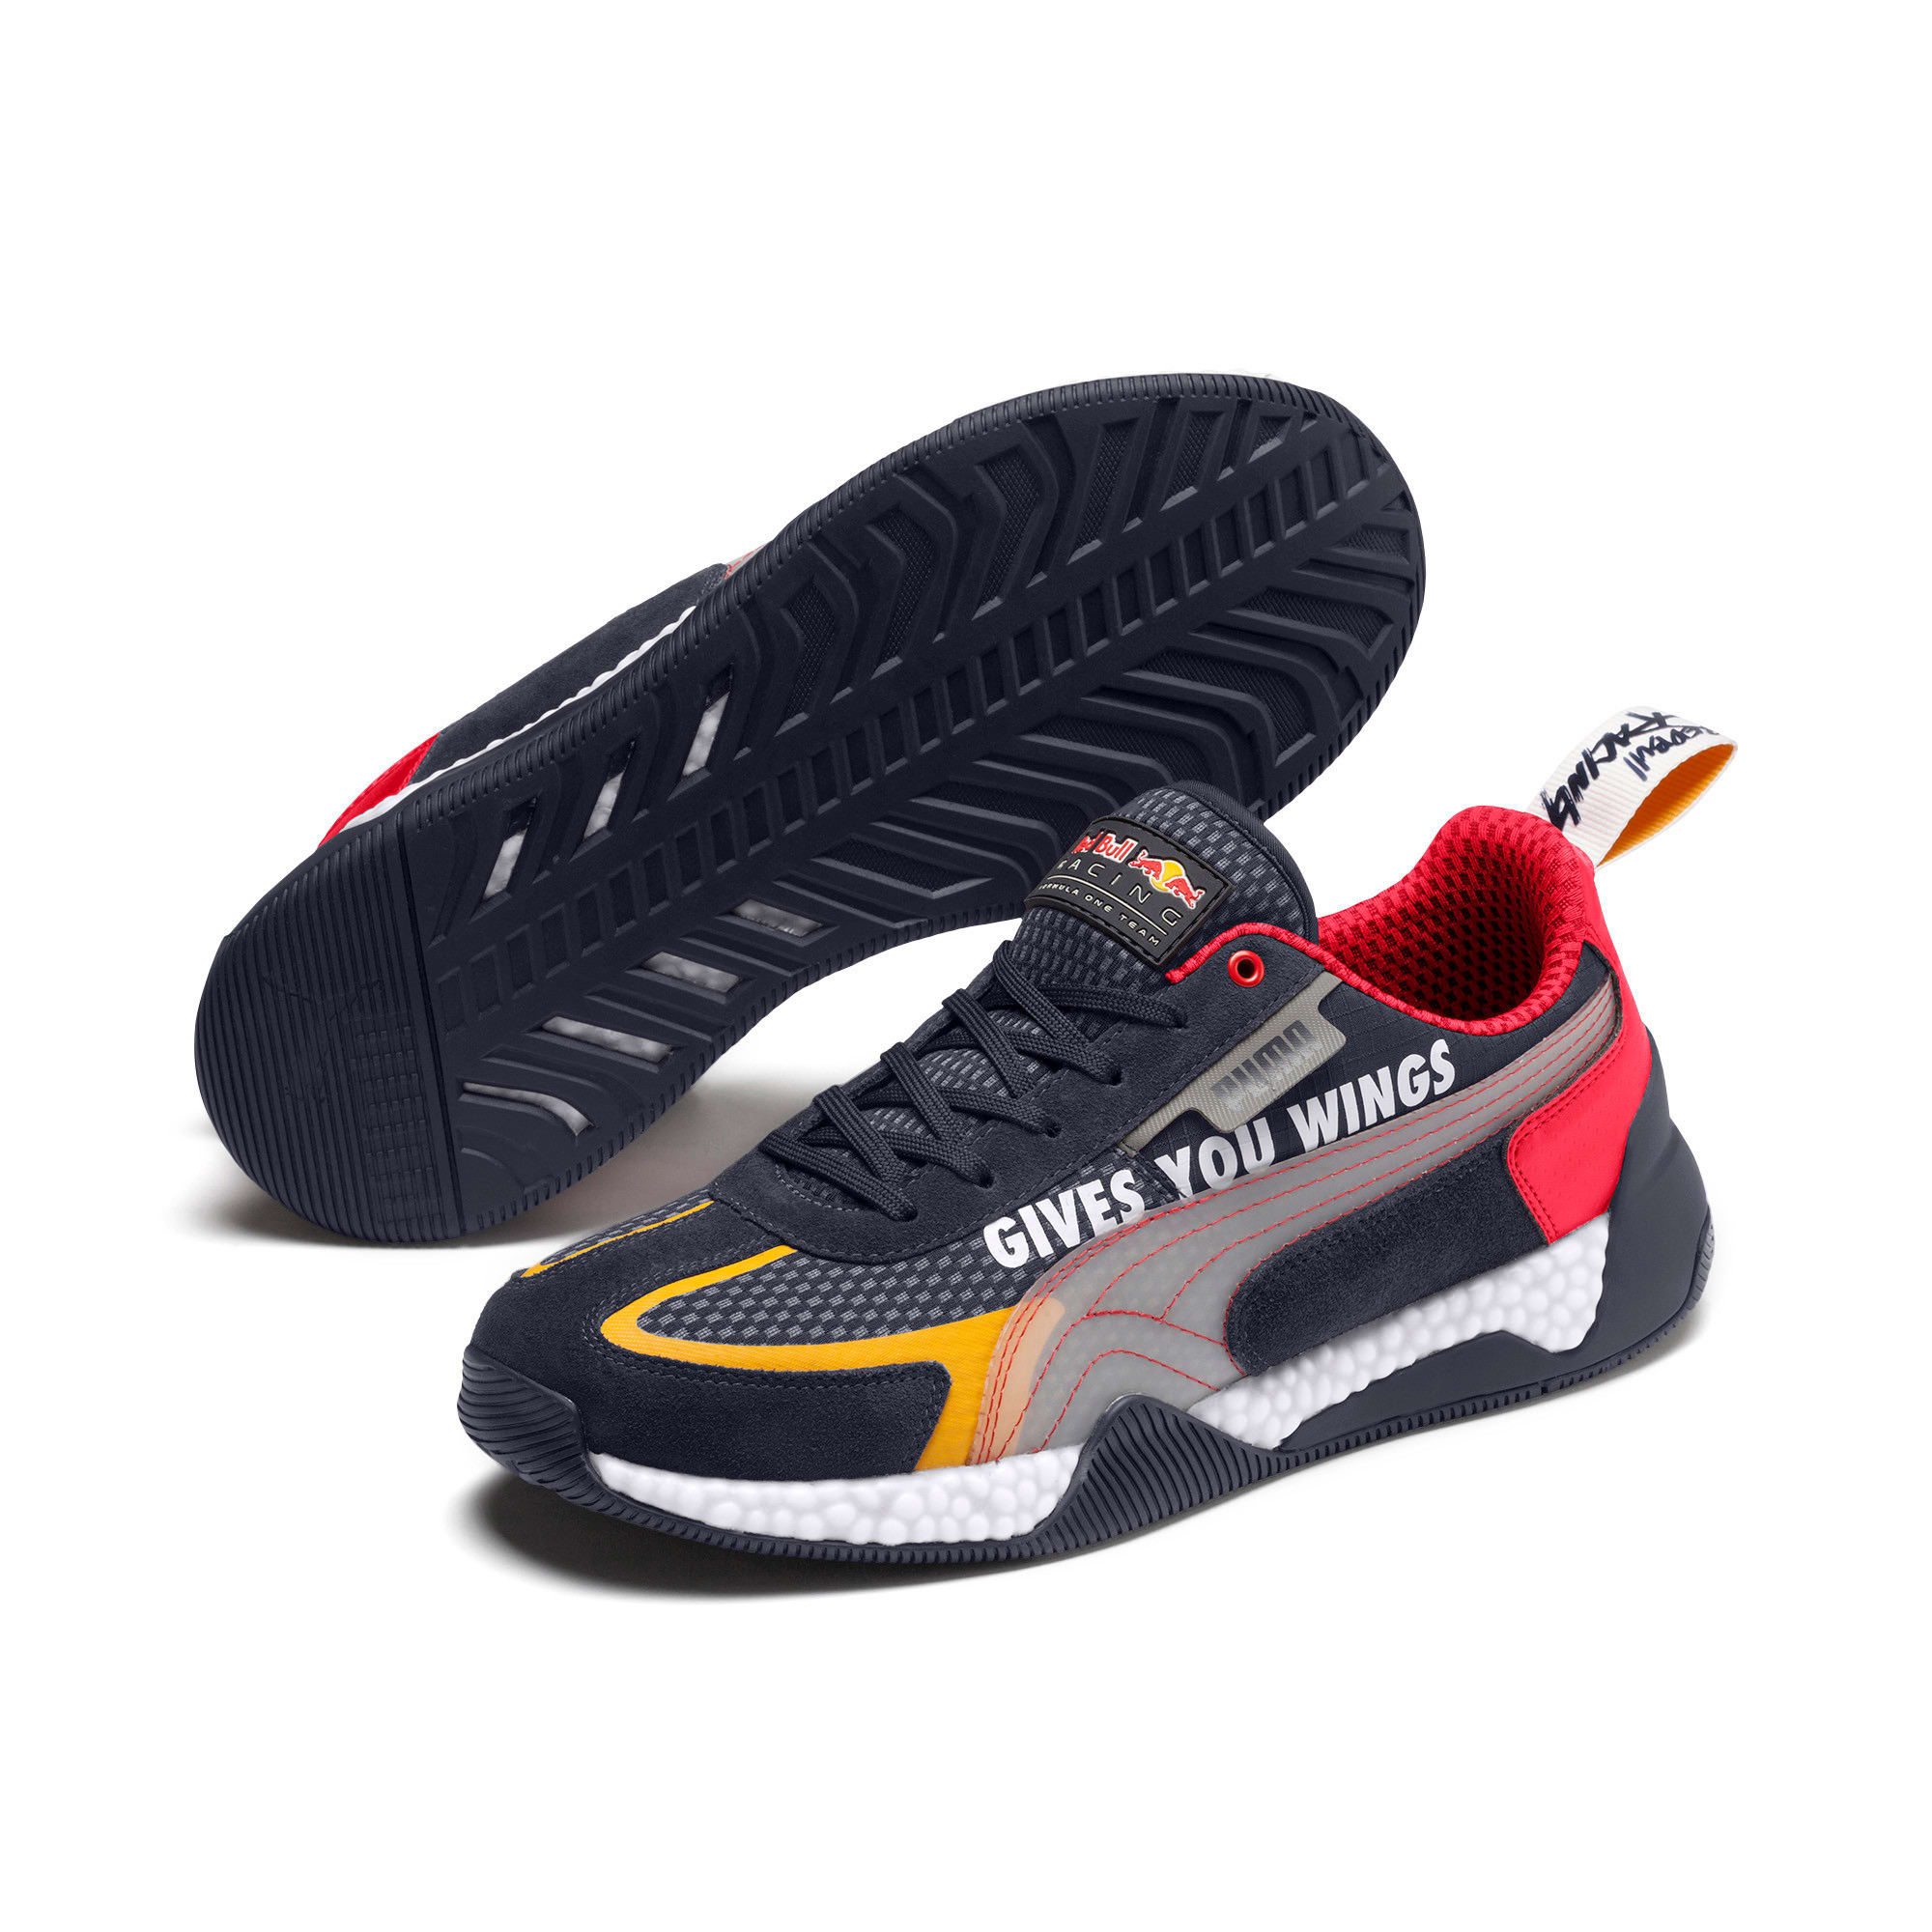 Thumbnail 3 of Red Bull Racing Speed HYBRID Men's Trainers, NIGHT SKY-White-Chinese Red, medium